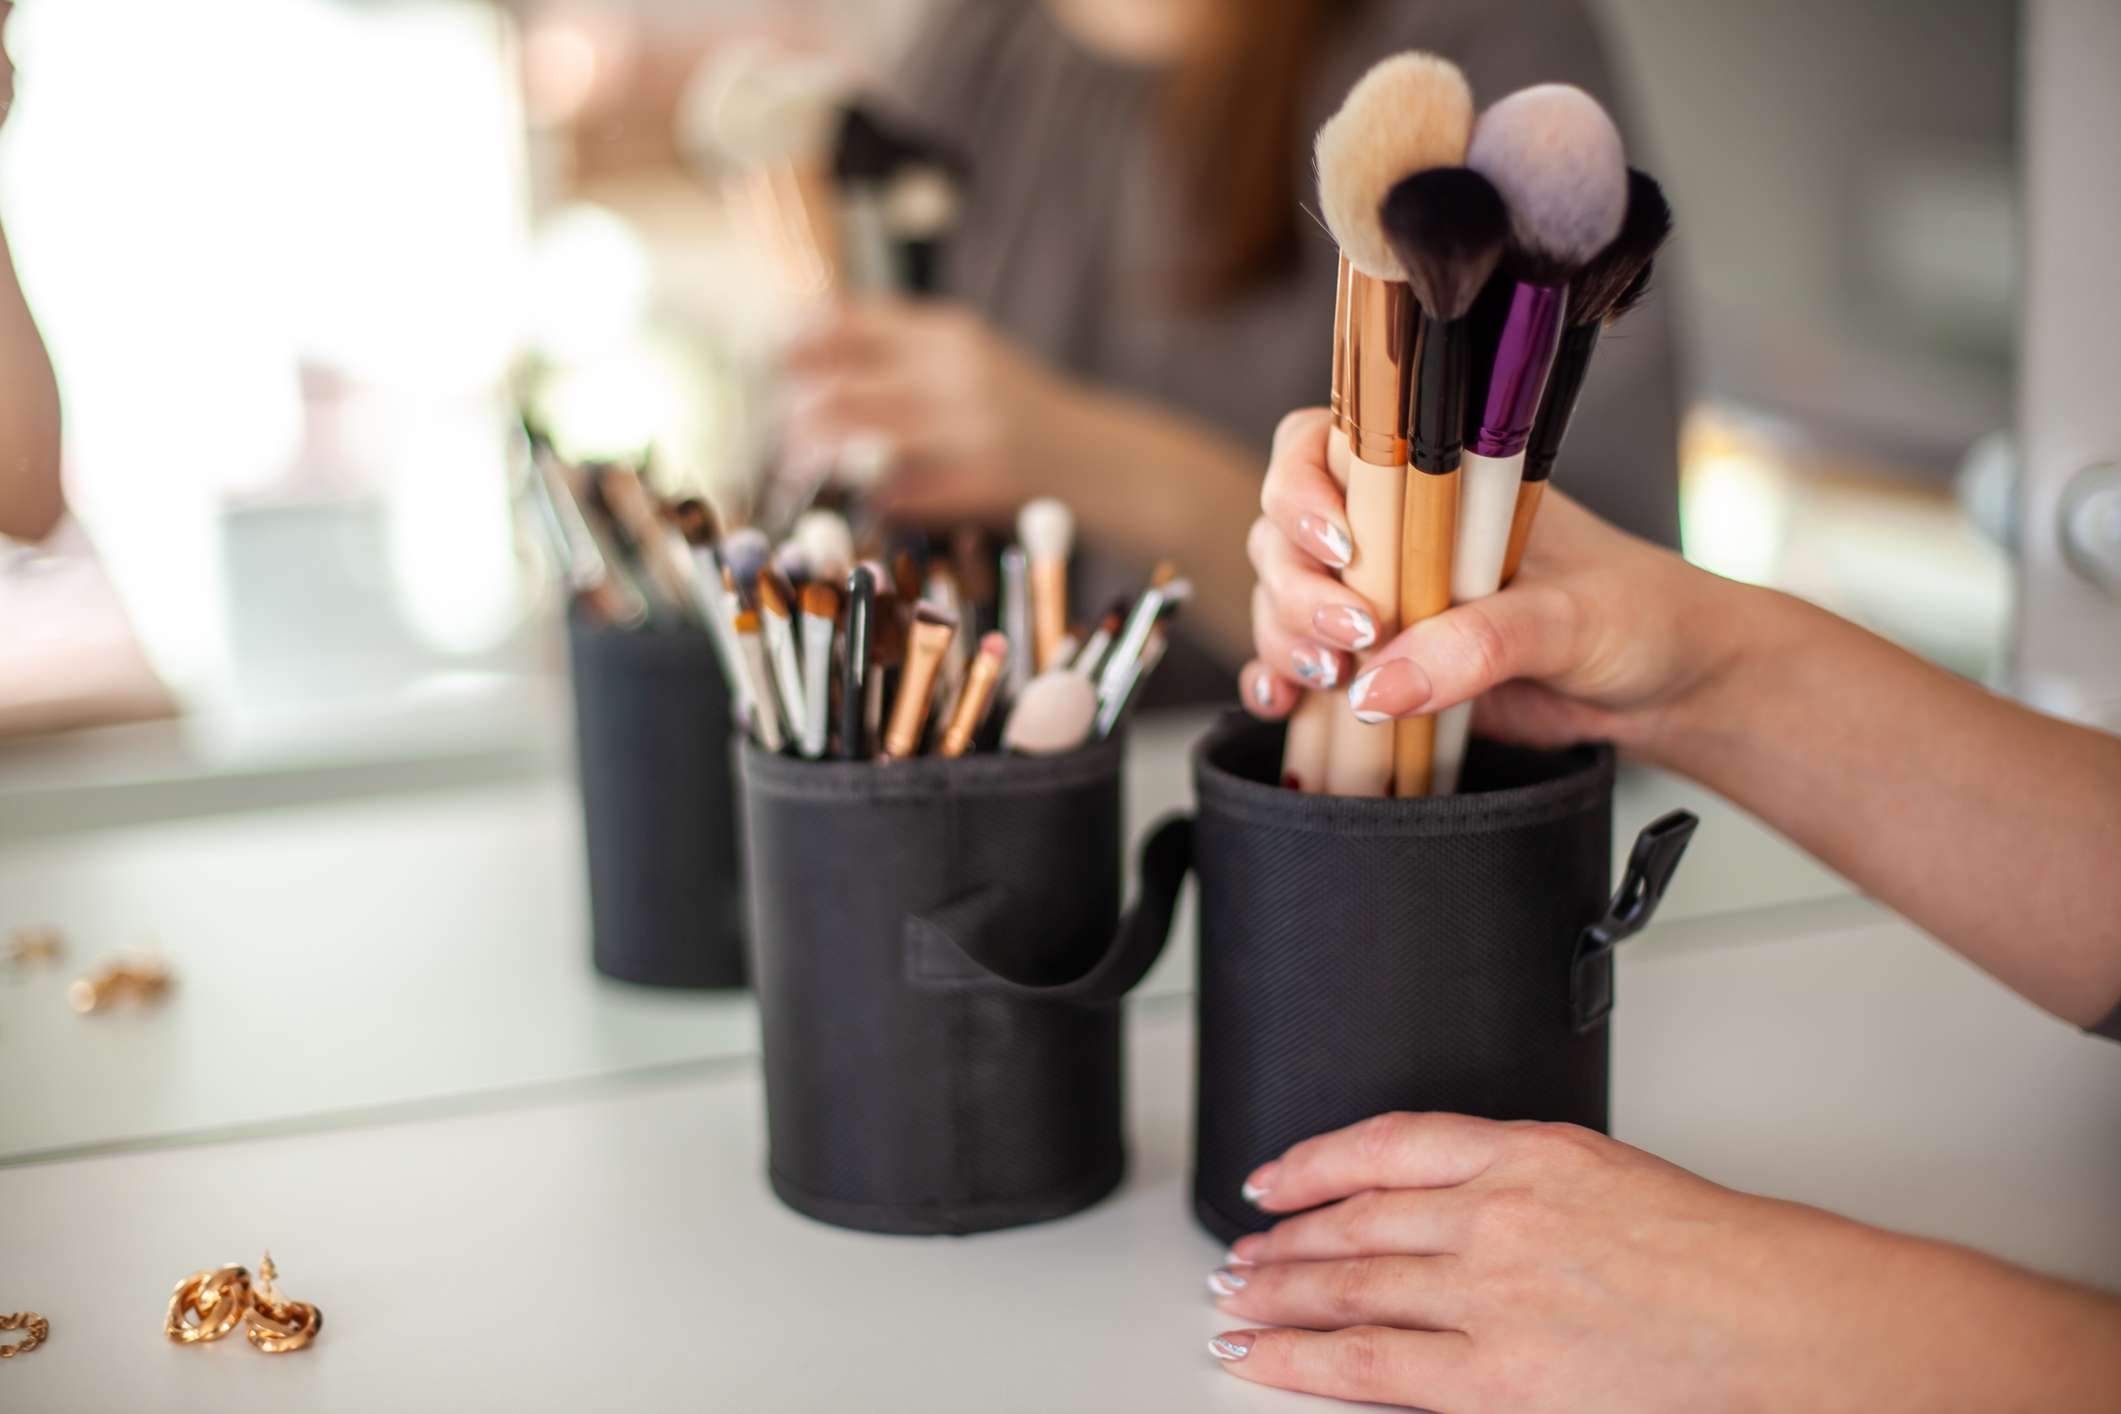 A woman with nail polish picks up brushes from a container.